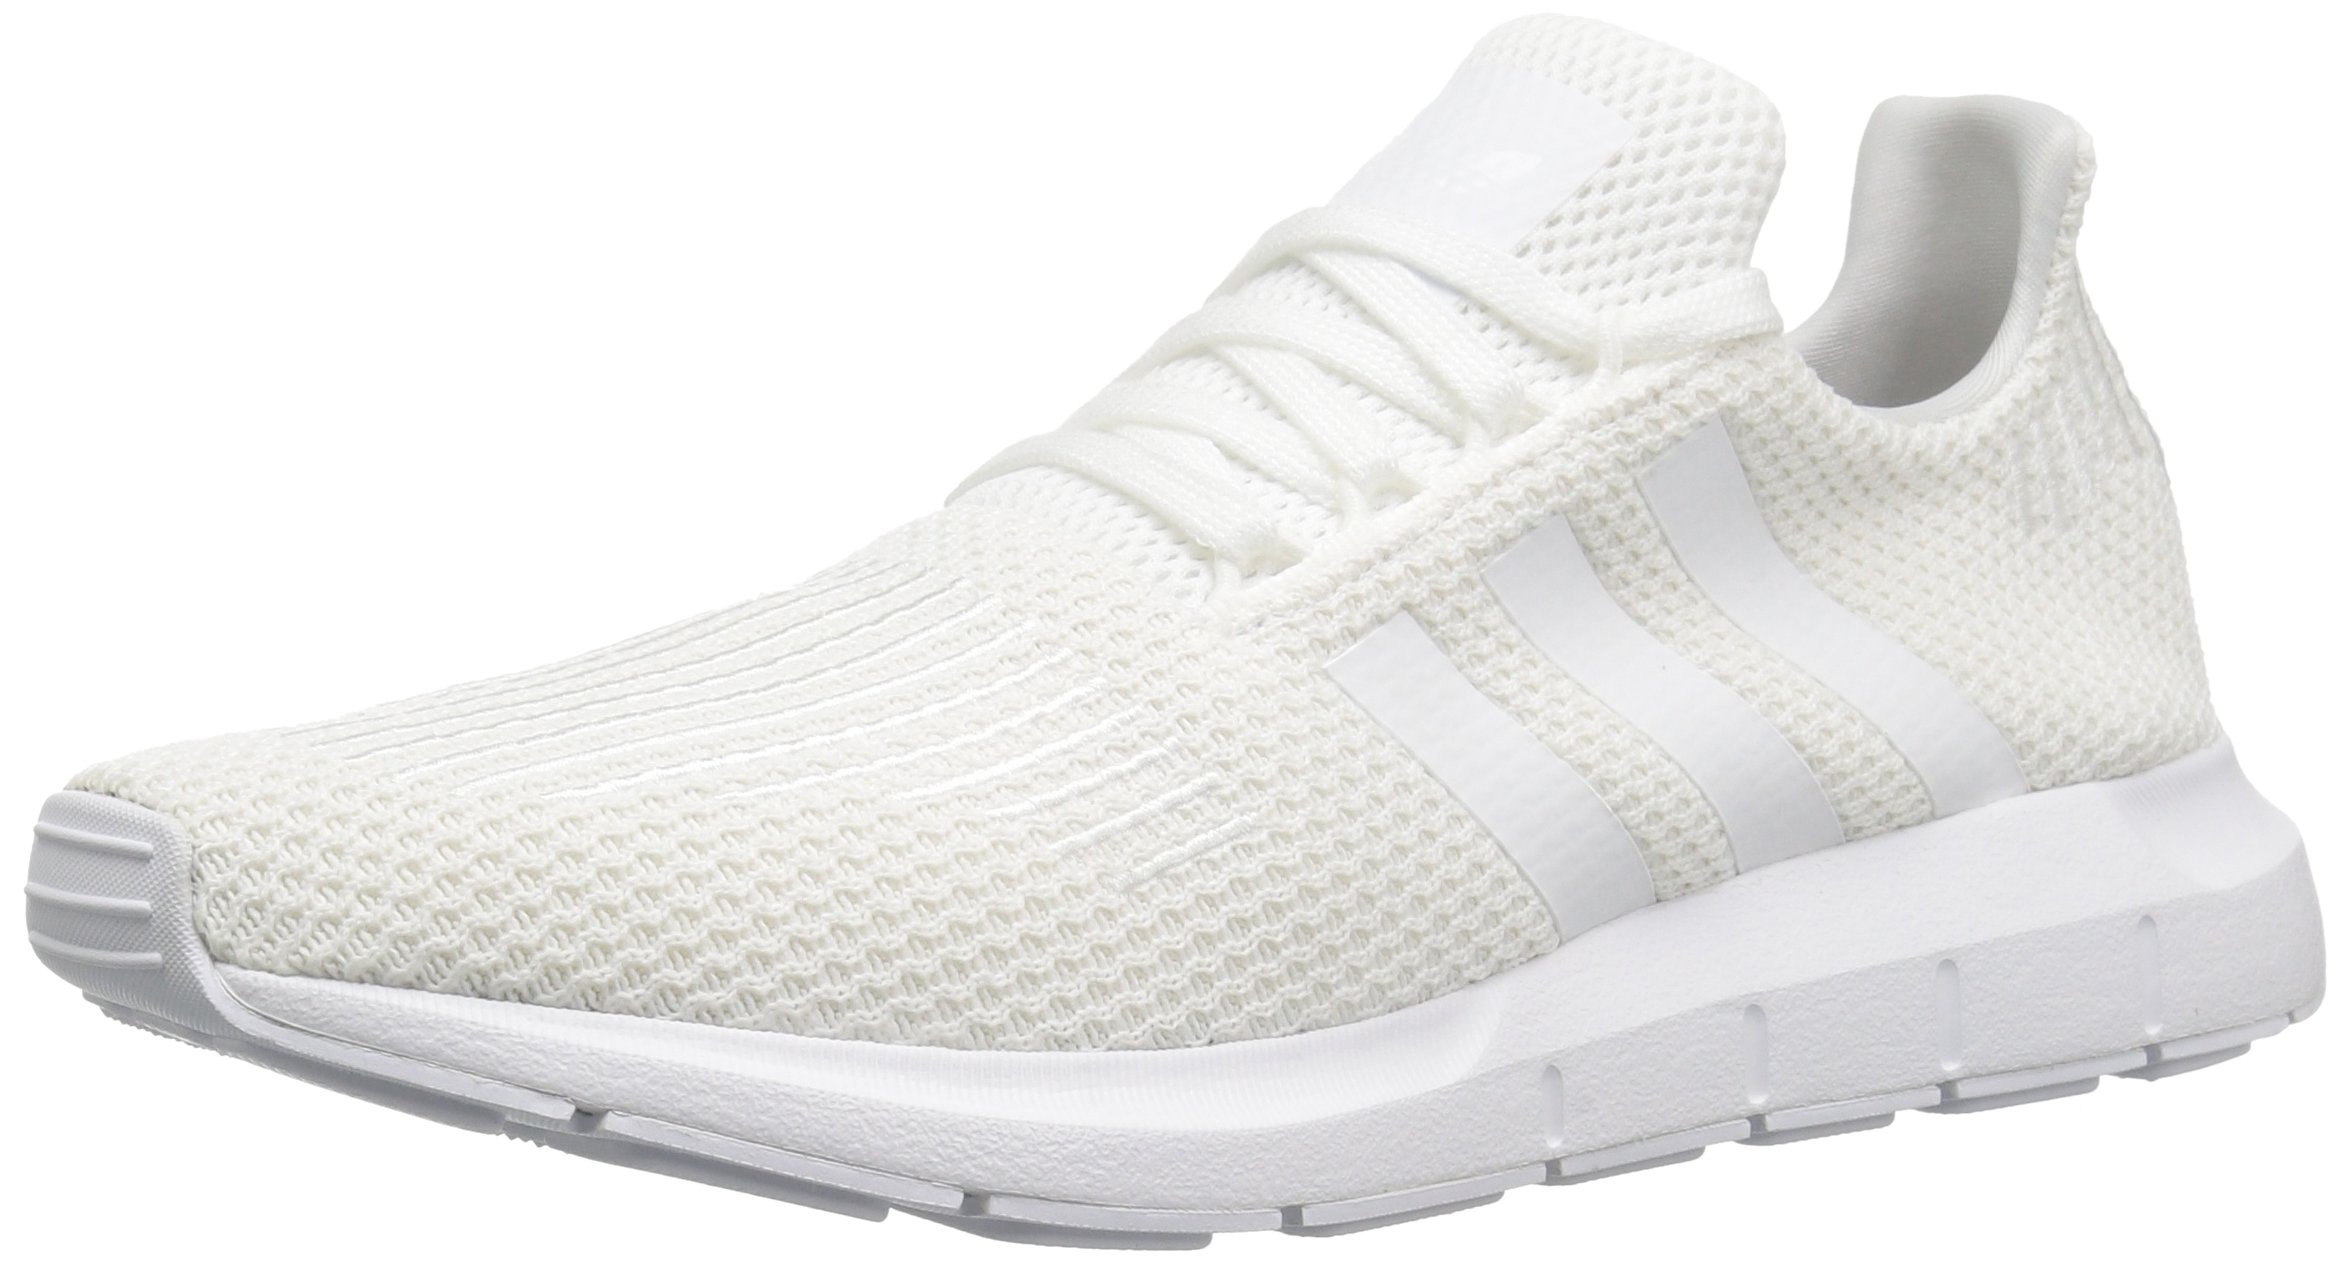 adidas Originals Men's Swift Running Shoe, White/White/Black, 10 M US by adidas Originals